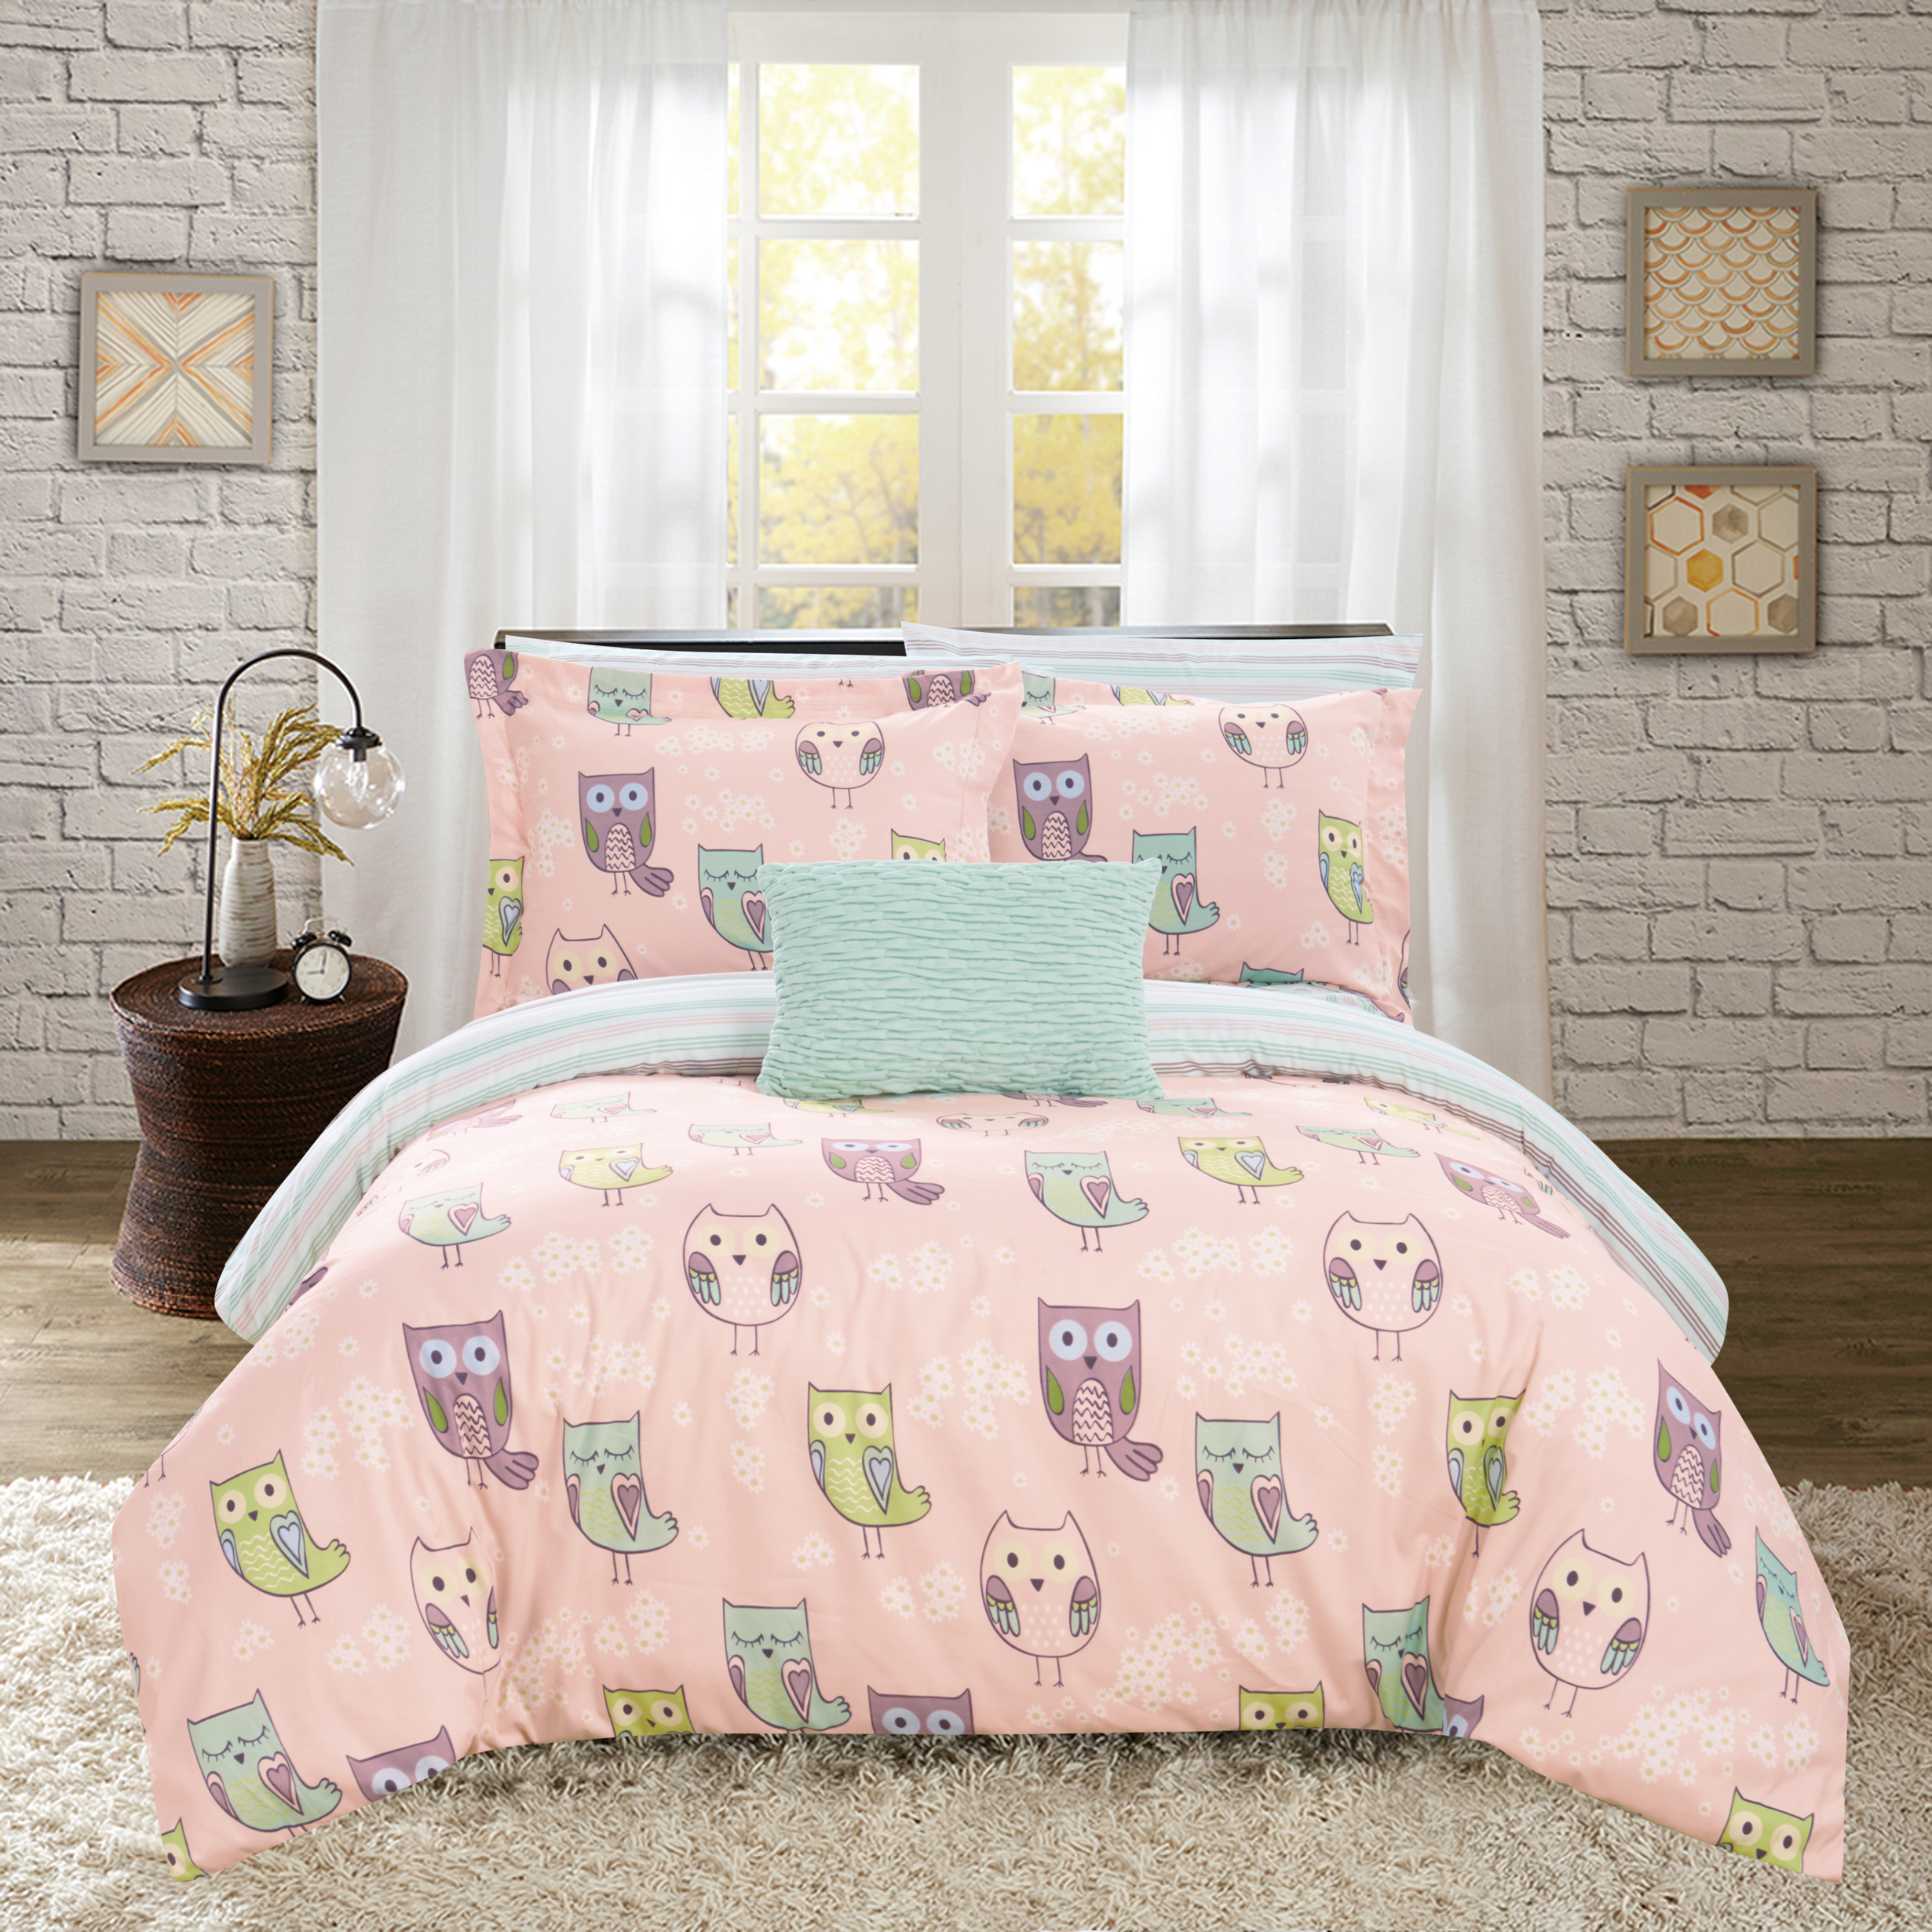 Chic Home Horned 6 Piece Reversible Comforter Set It's A Hoot Owl Friends